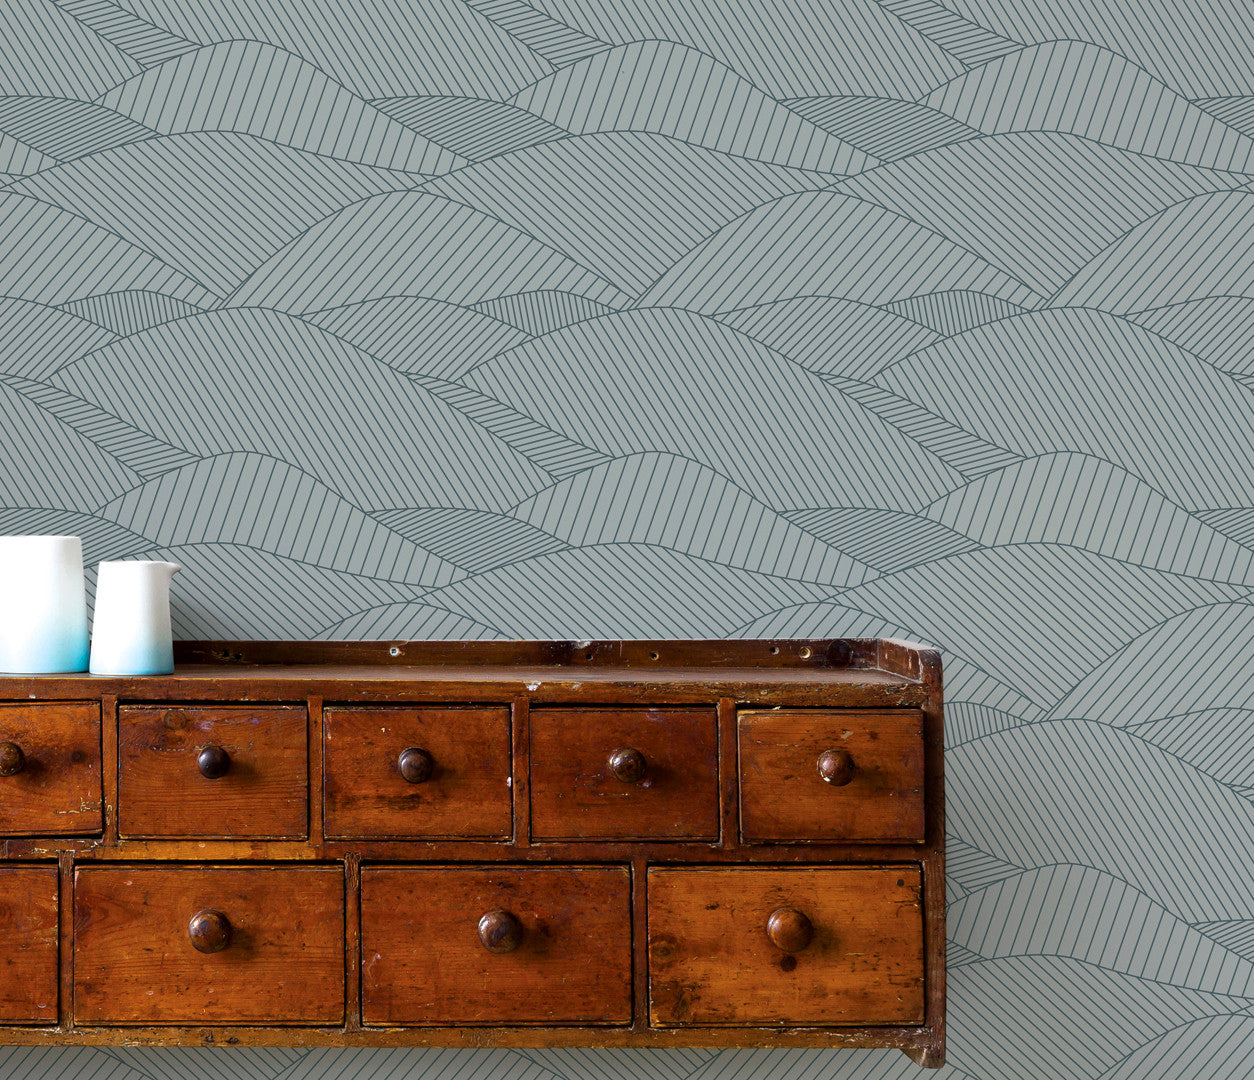 'South Downs' Rolling Hills Wallpaper in Sea Grey